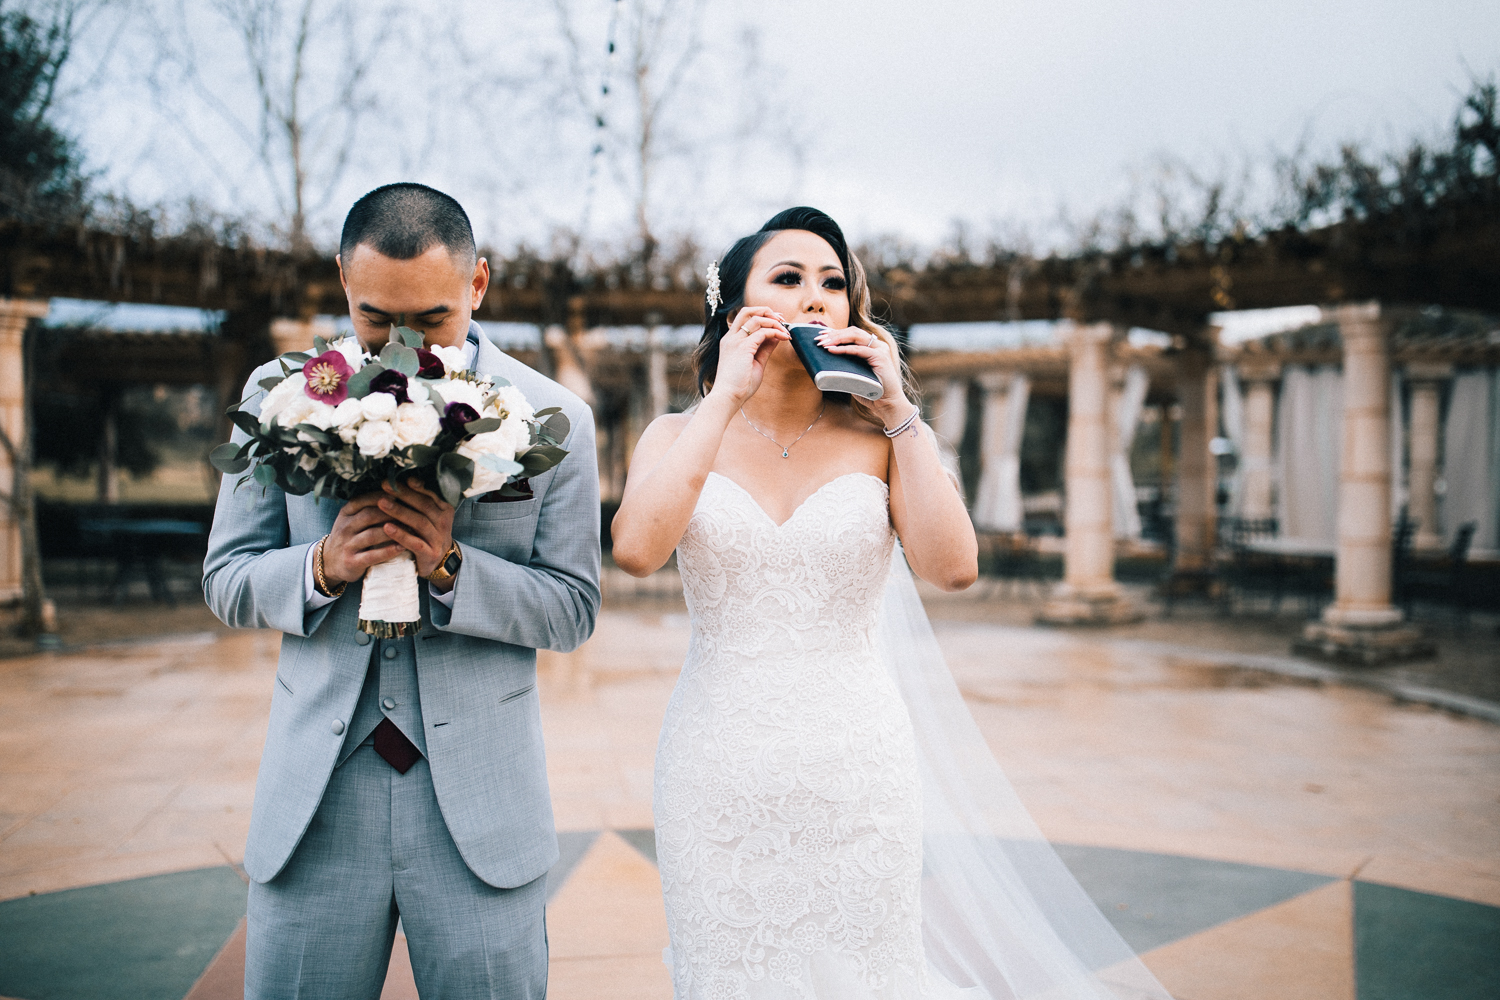 2019_01_ 202019.01.20 Santiago Wedding Blog Photos Edited For Web 0078.jpg